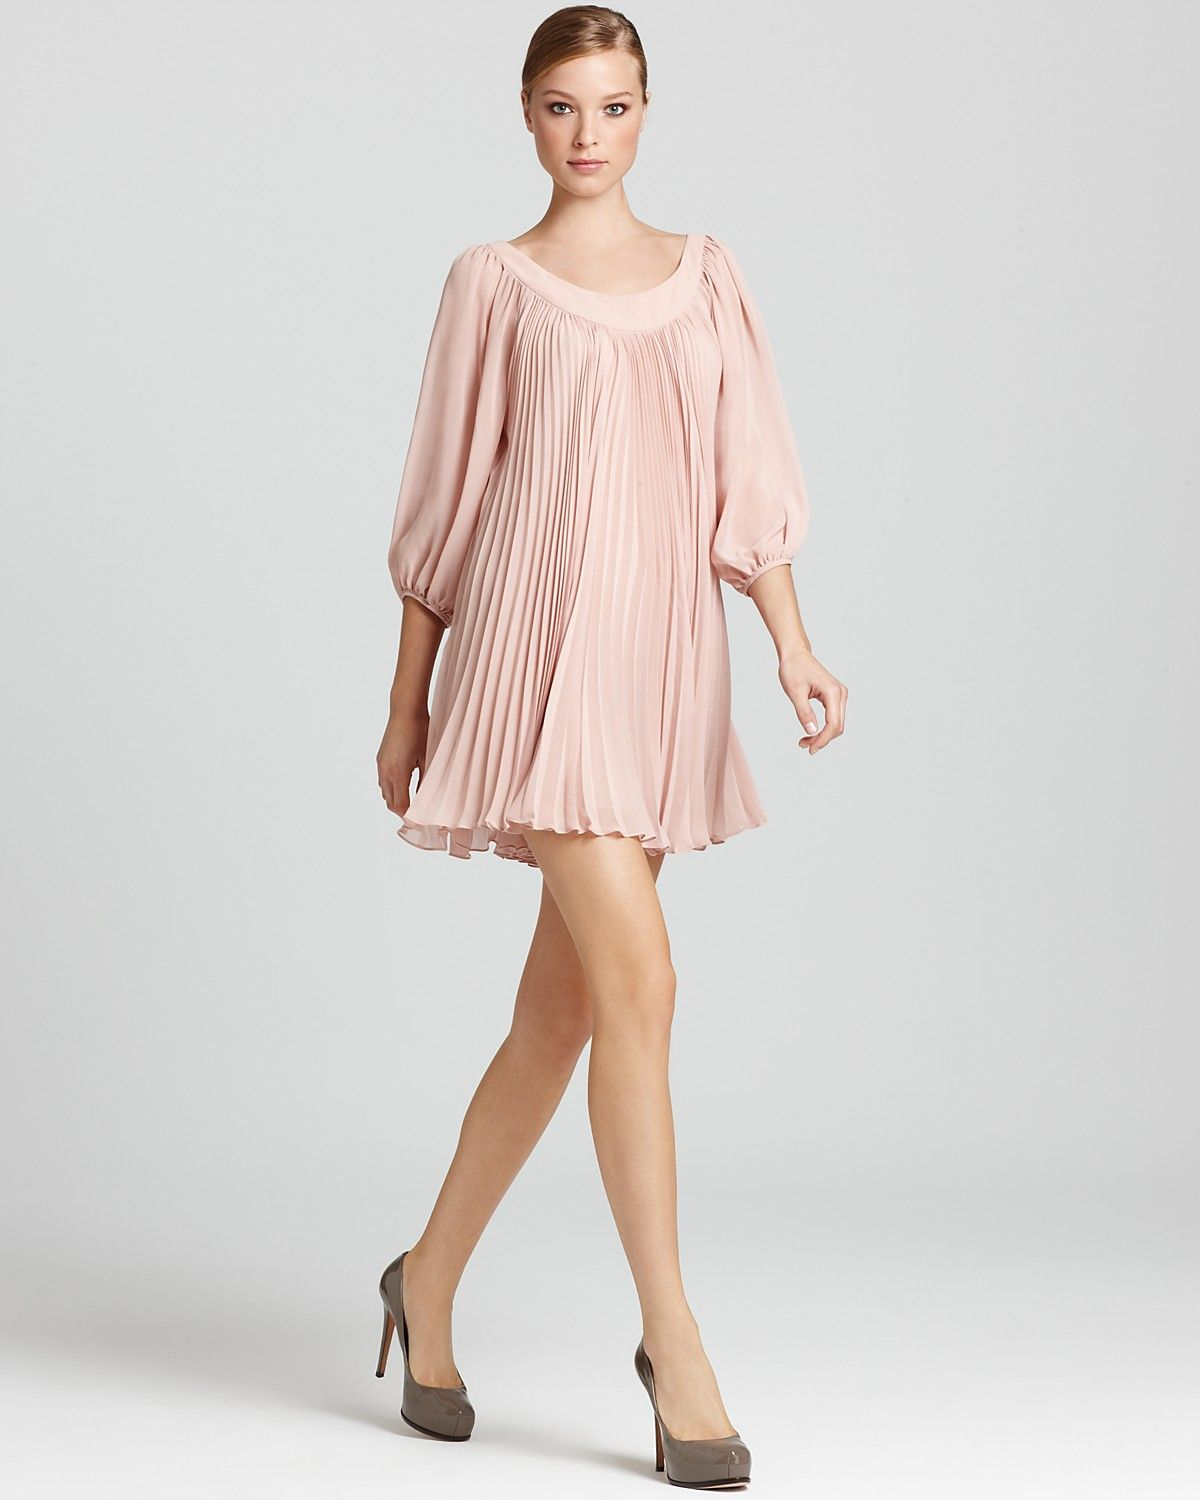 Love This Erin Fetherston Dress